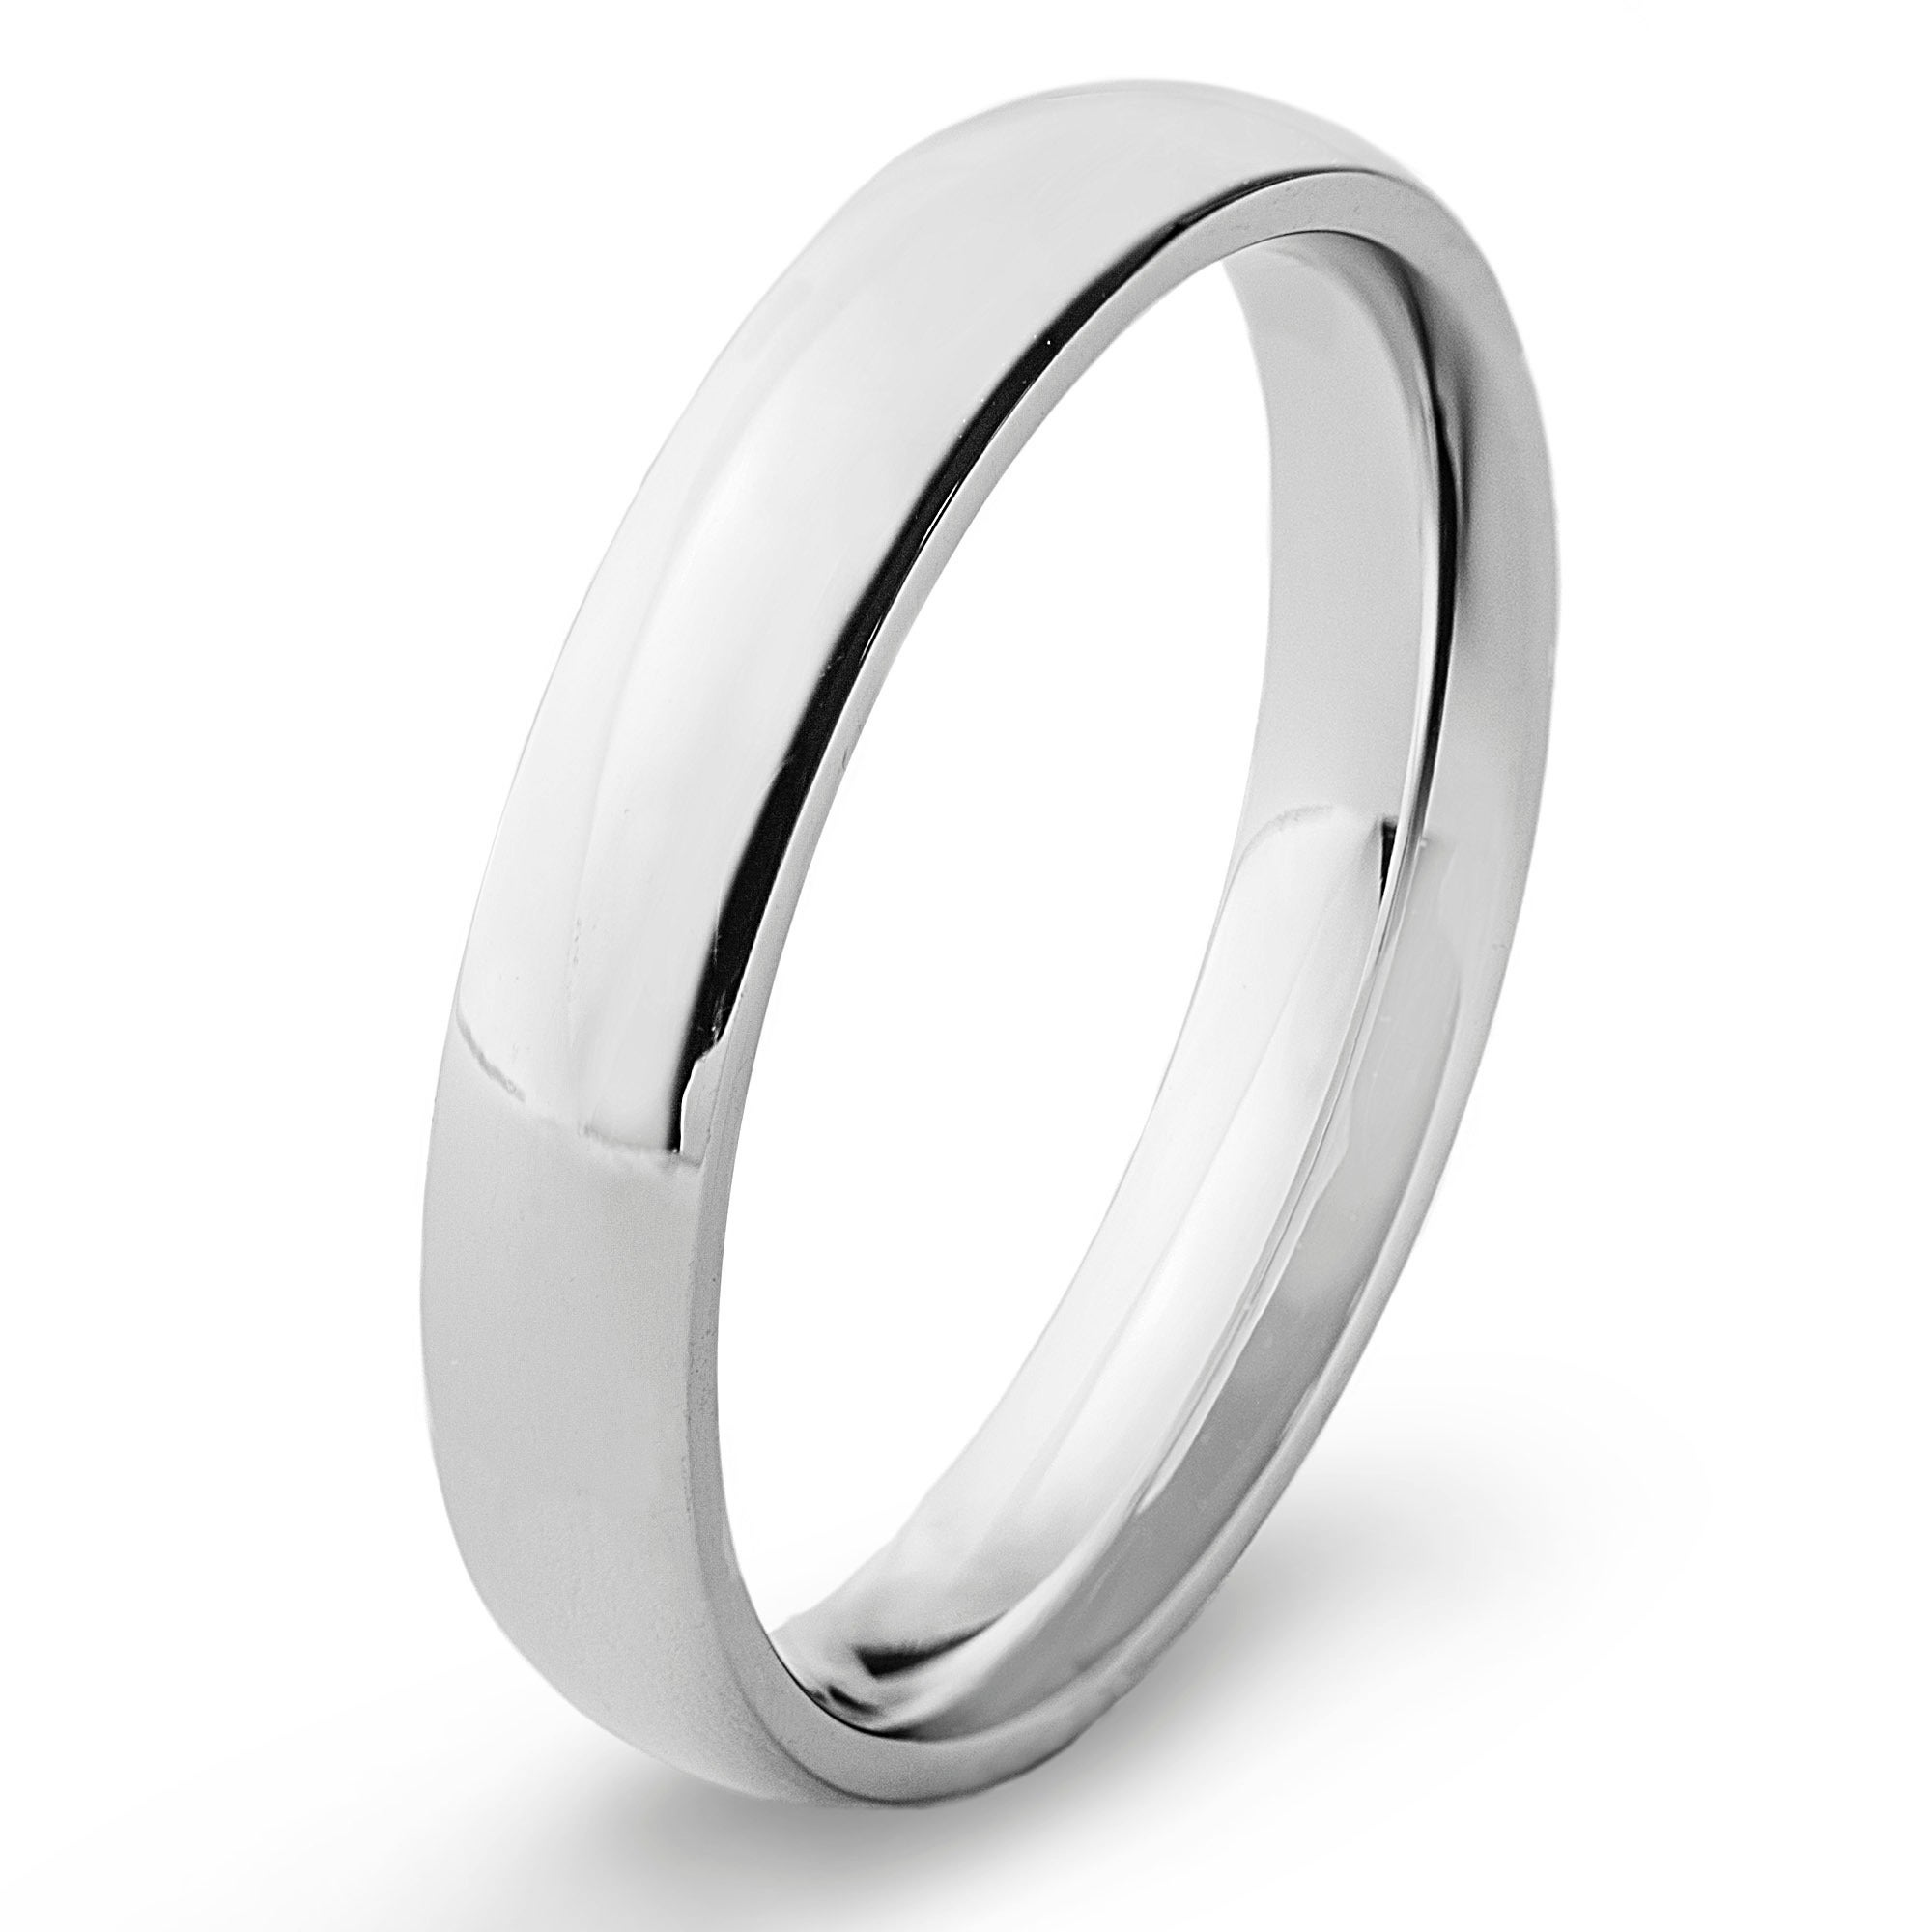 items products product specialty lgbt j ring stainless m wedding rings steel image mens